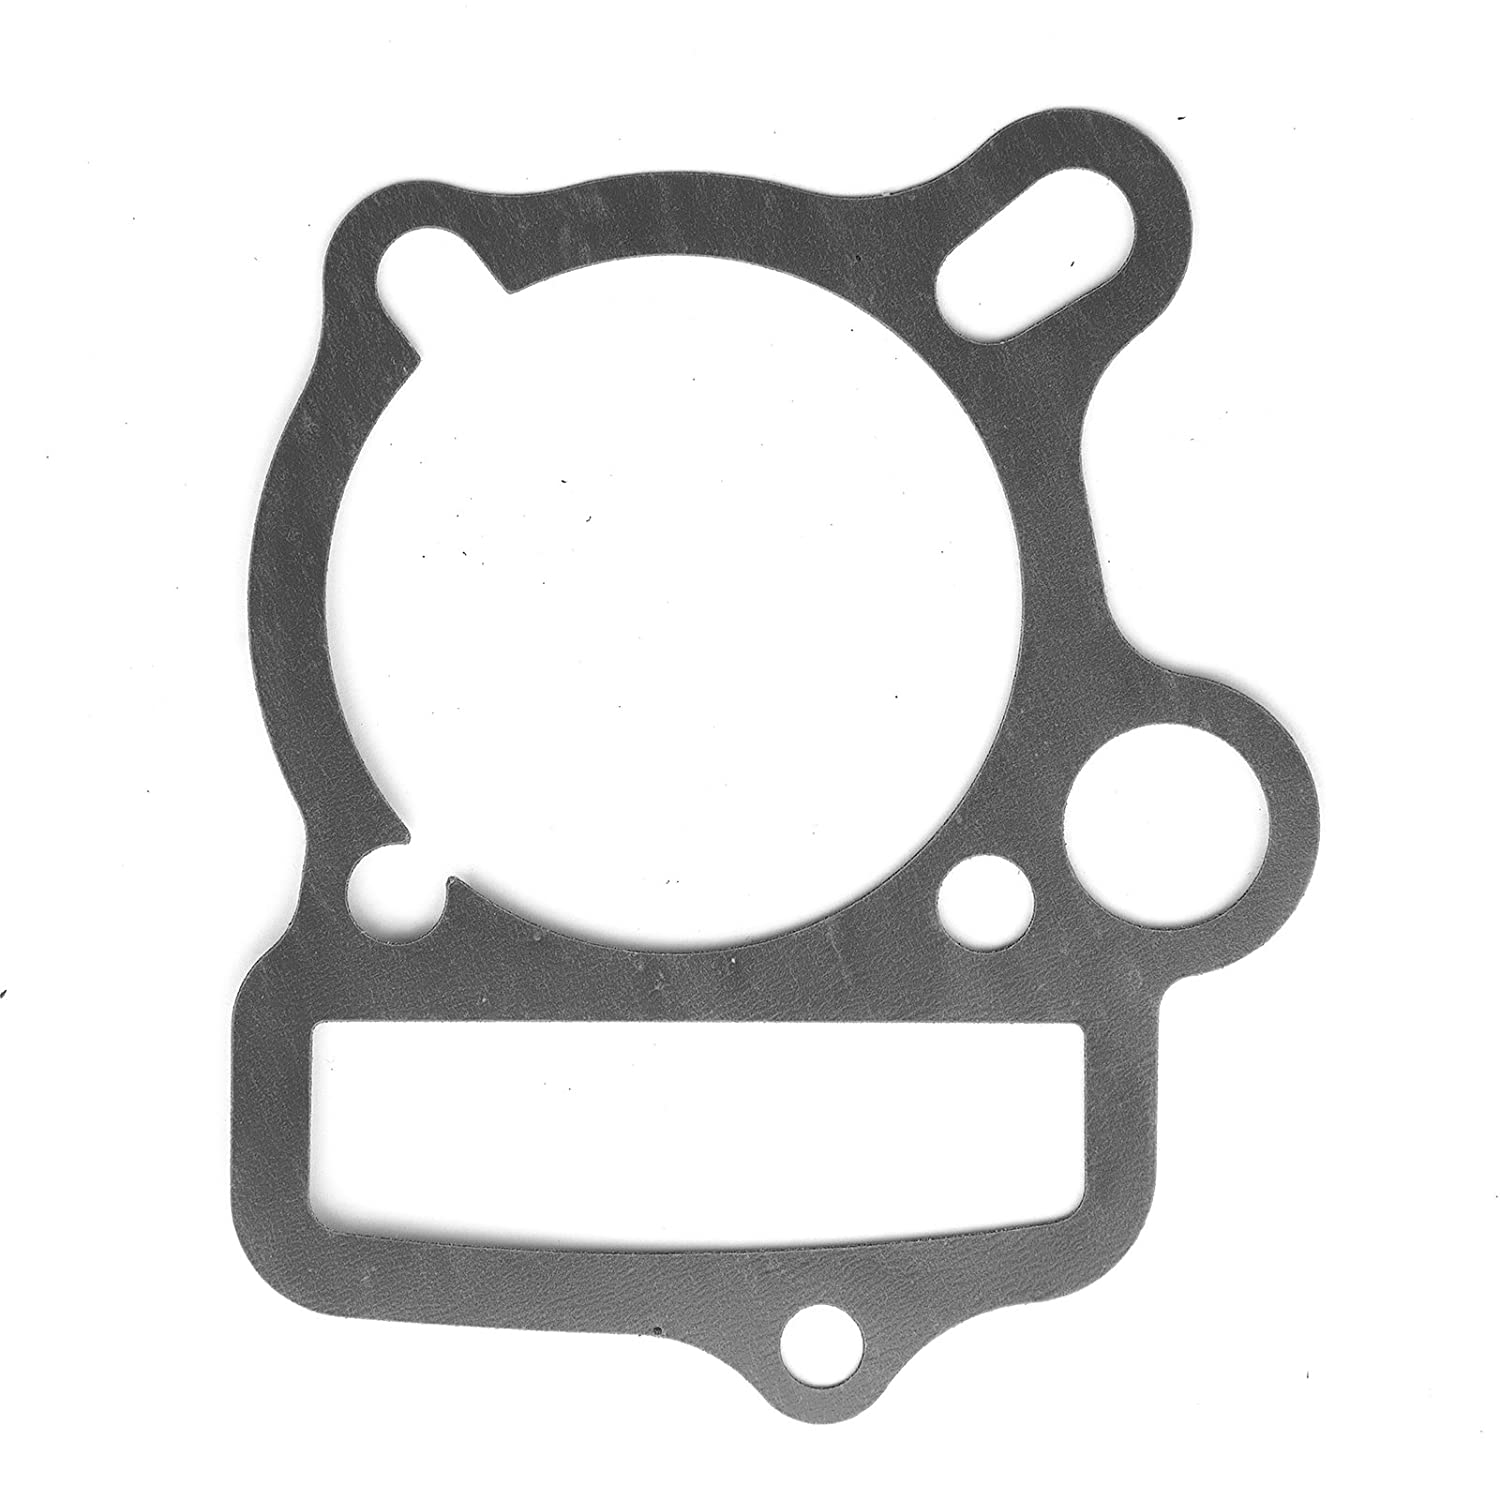 Pit Bike Base Gasket For Larger 125cc 54mm Round Oil Hole PetrolScooter